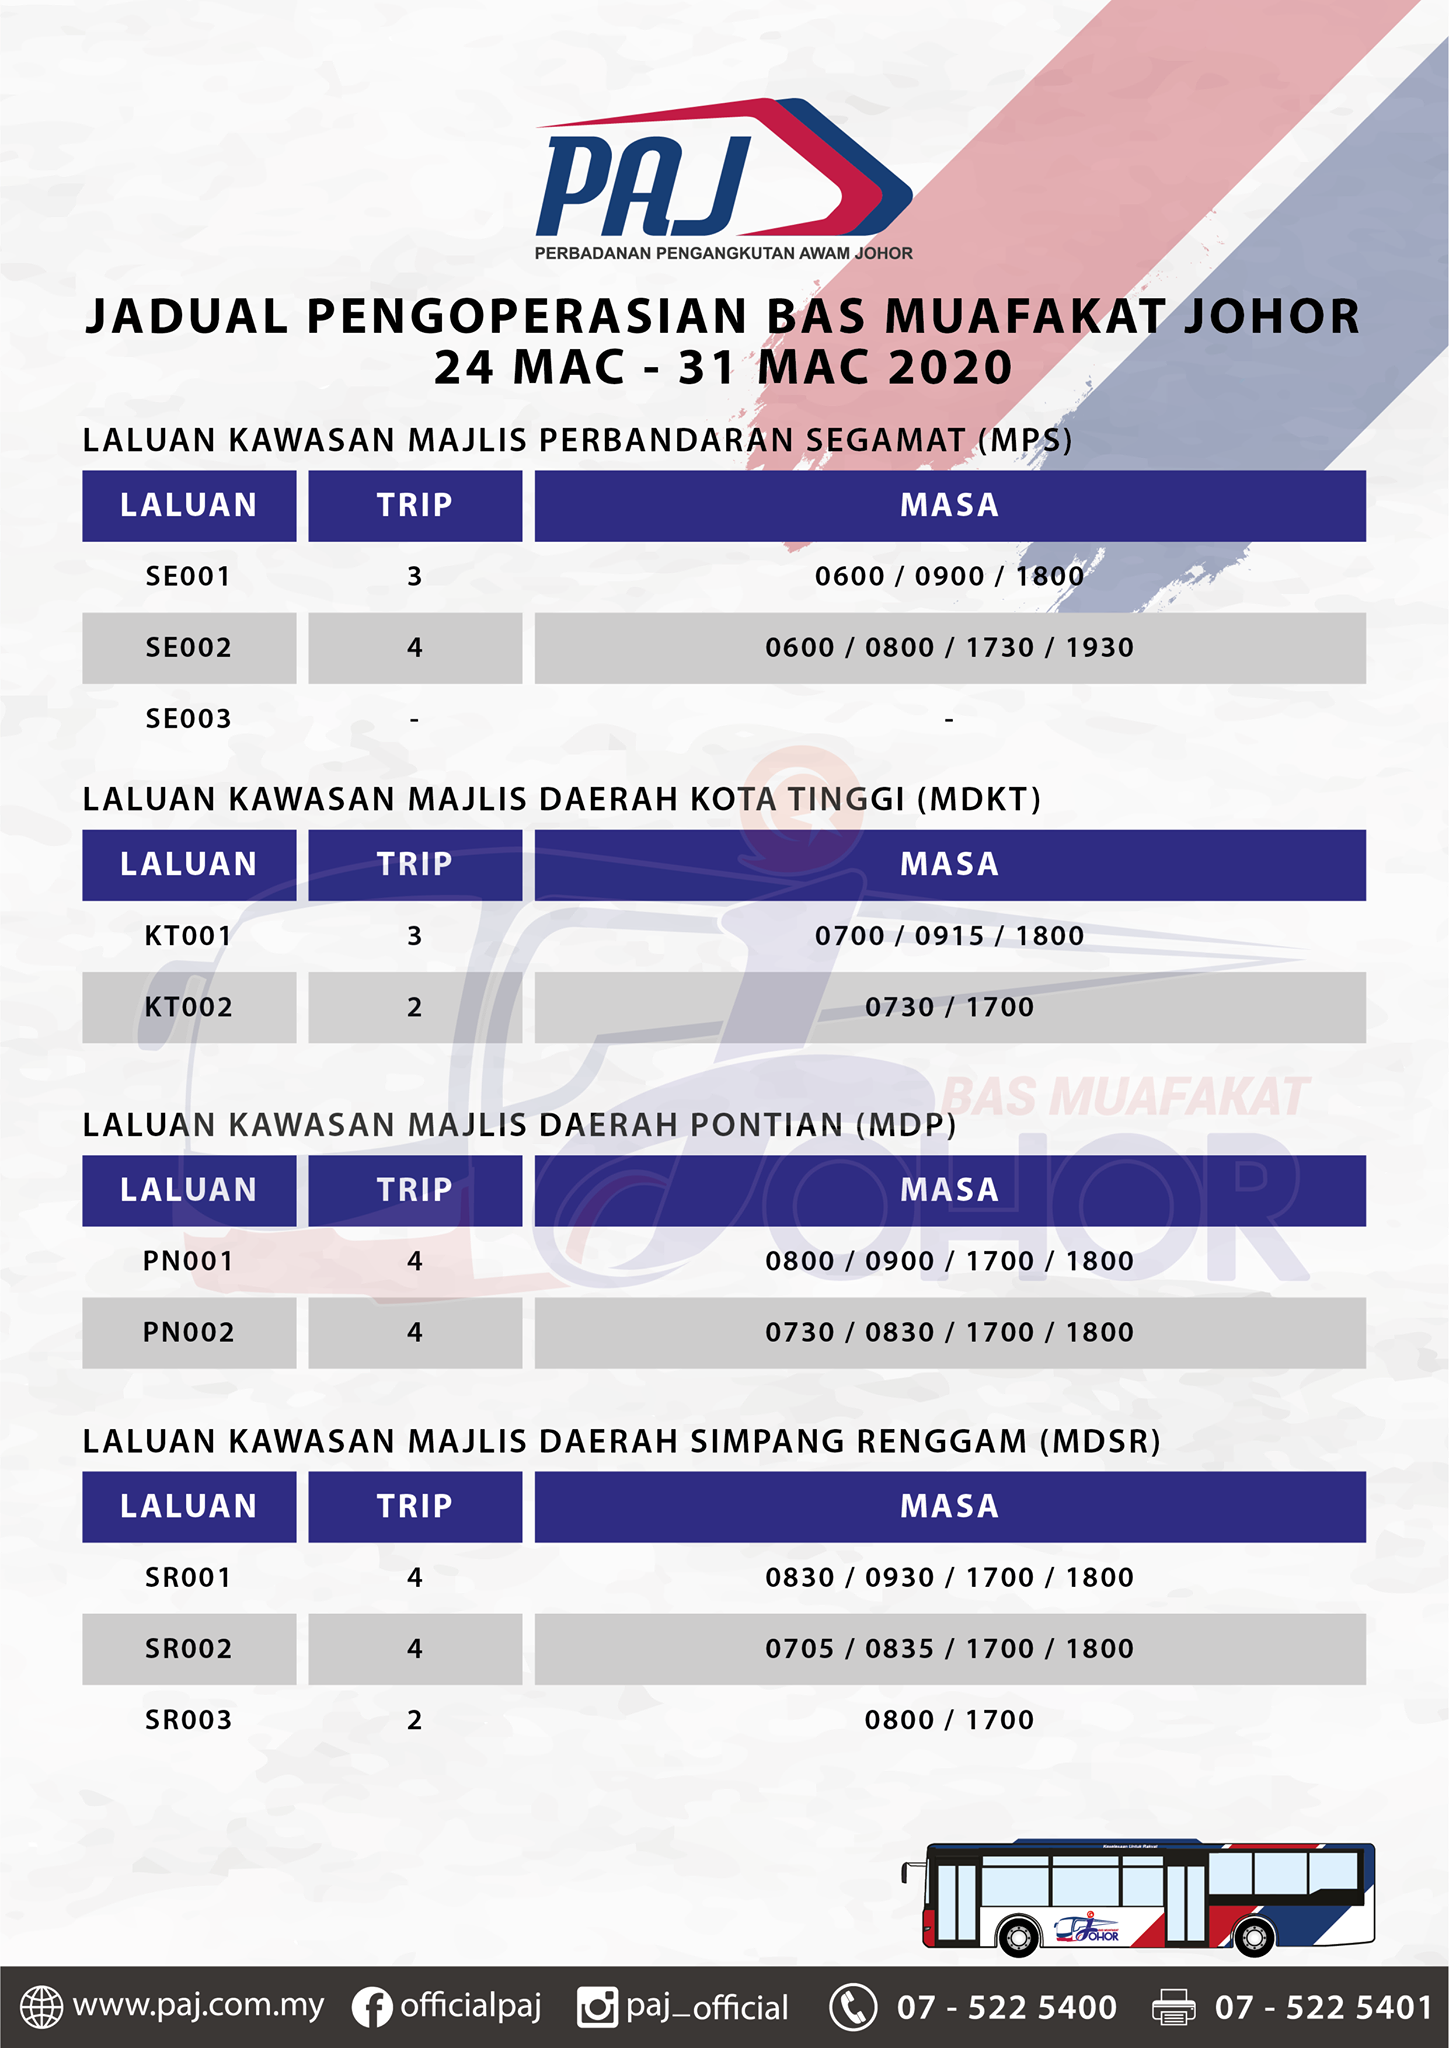 Official PAJ poster on the change in operation hours of Bas Muafakat Johor bus services in Segamat, Kota Tinggi, Pontian and Simpang Renggam districts